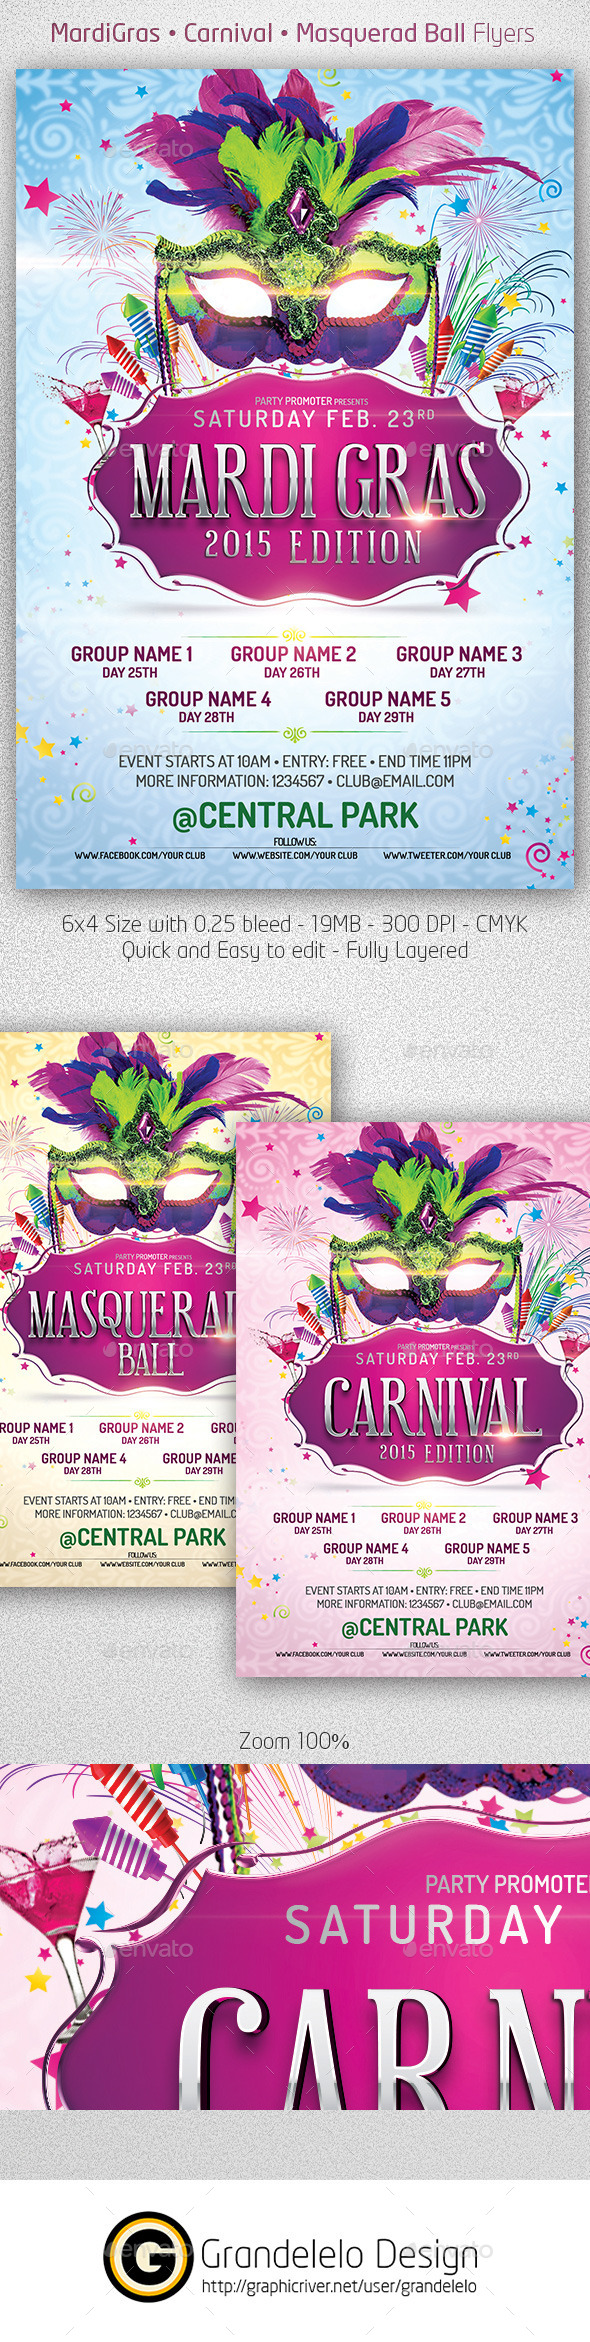 GraphicRiver Mardi Gras 2015 The Poster Template 9764847